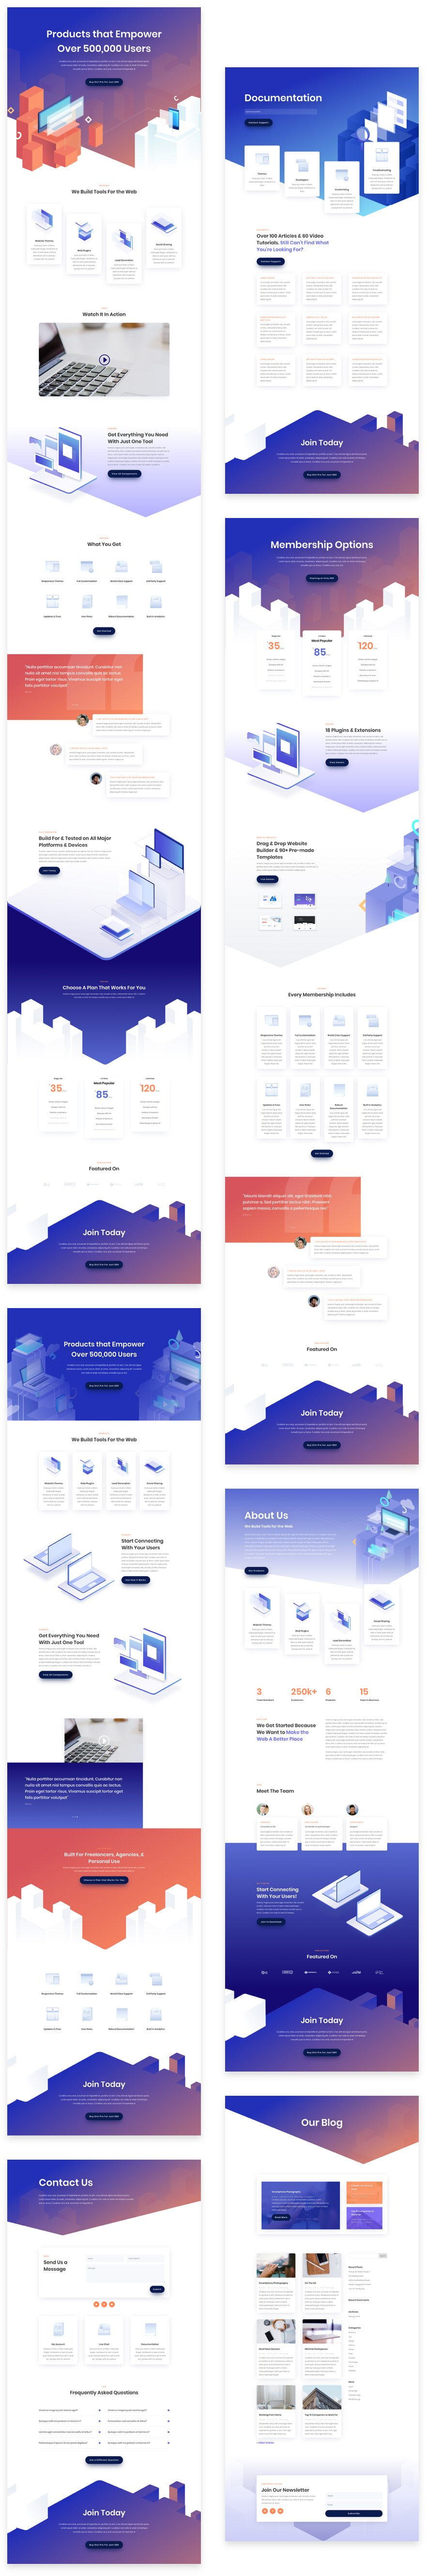 digital product layout